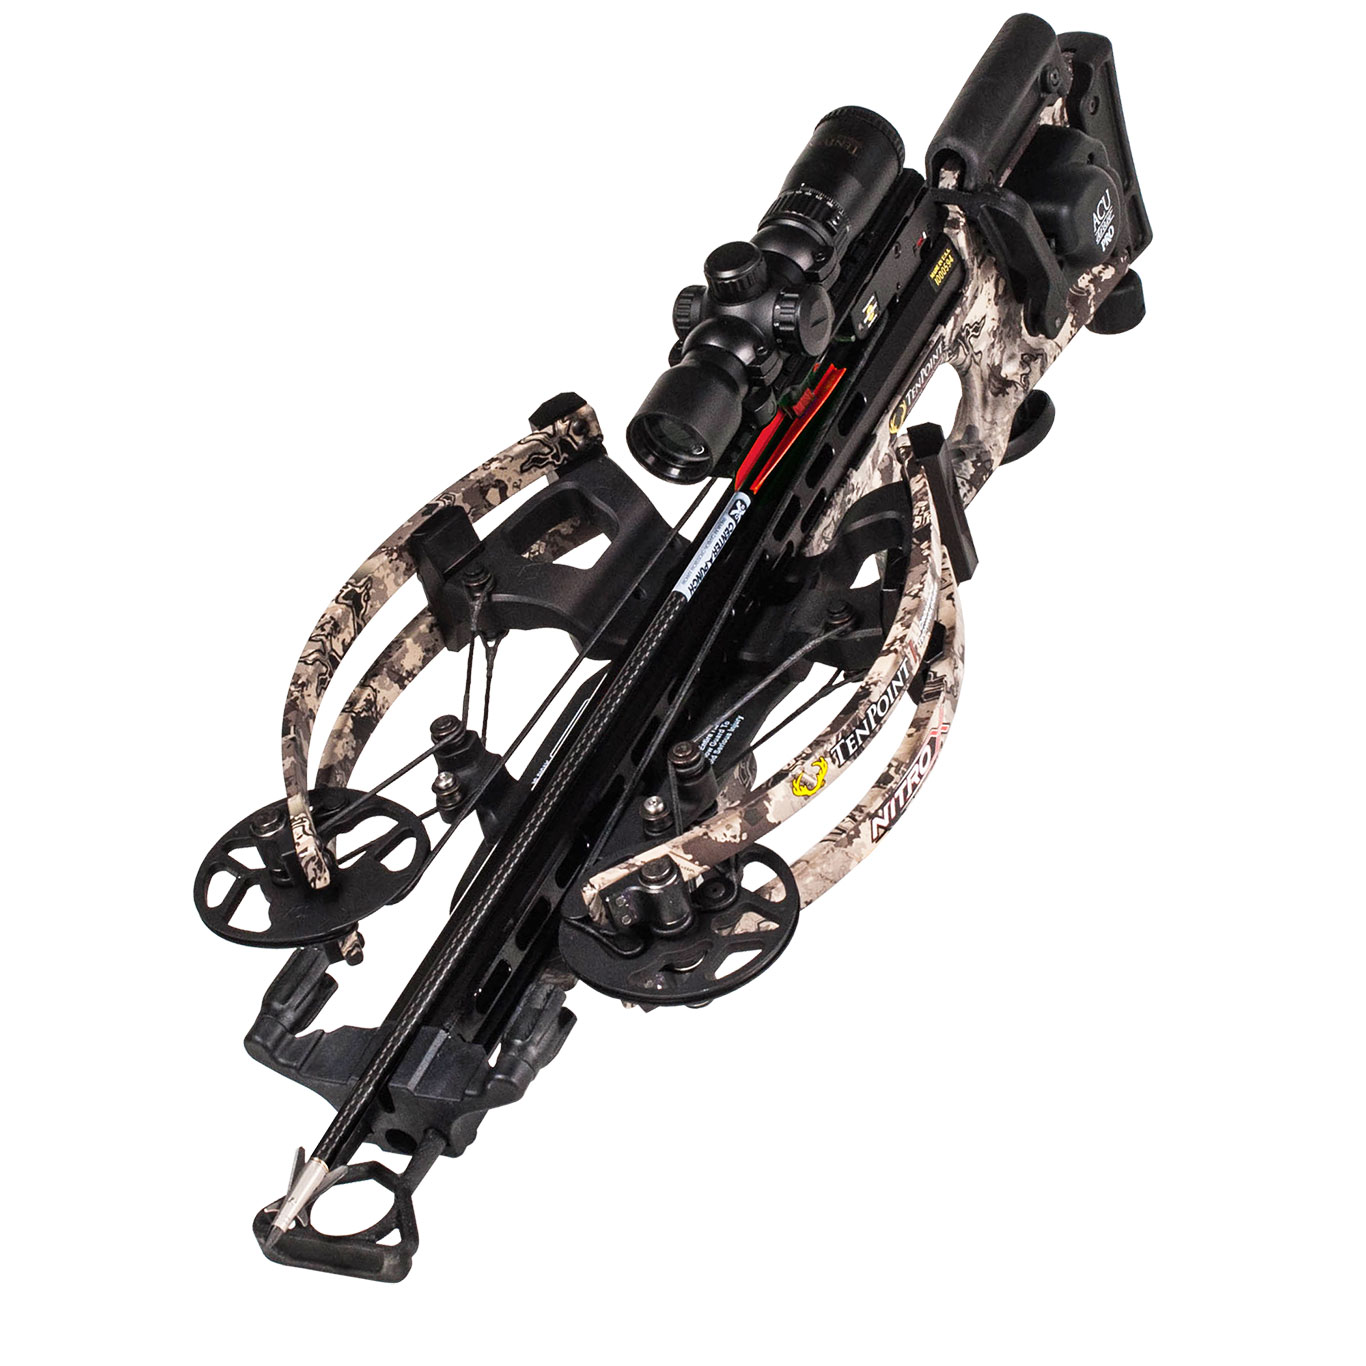 TenPoint Nitro X Crossbow